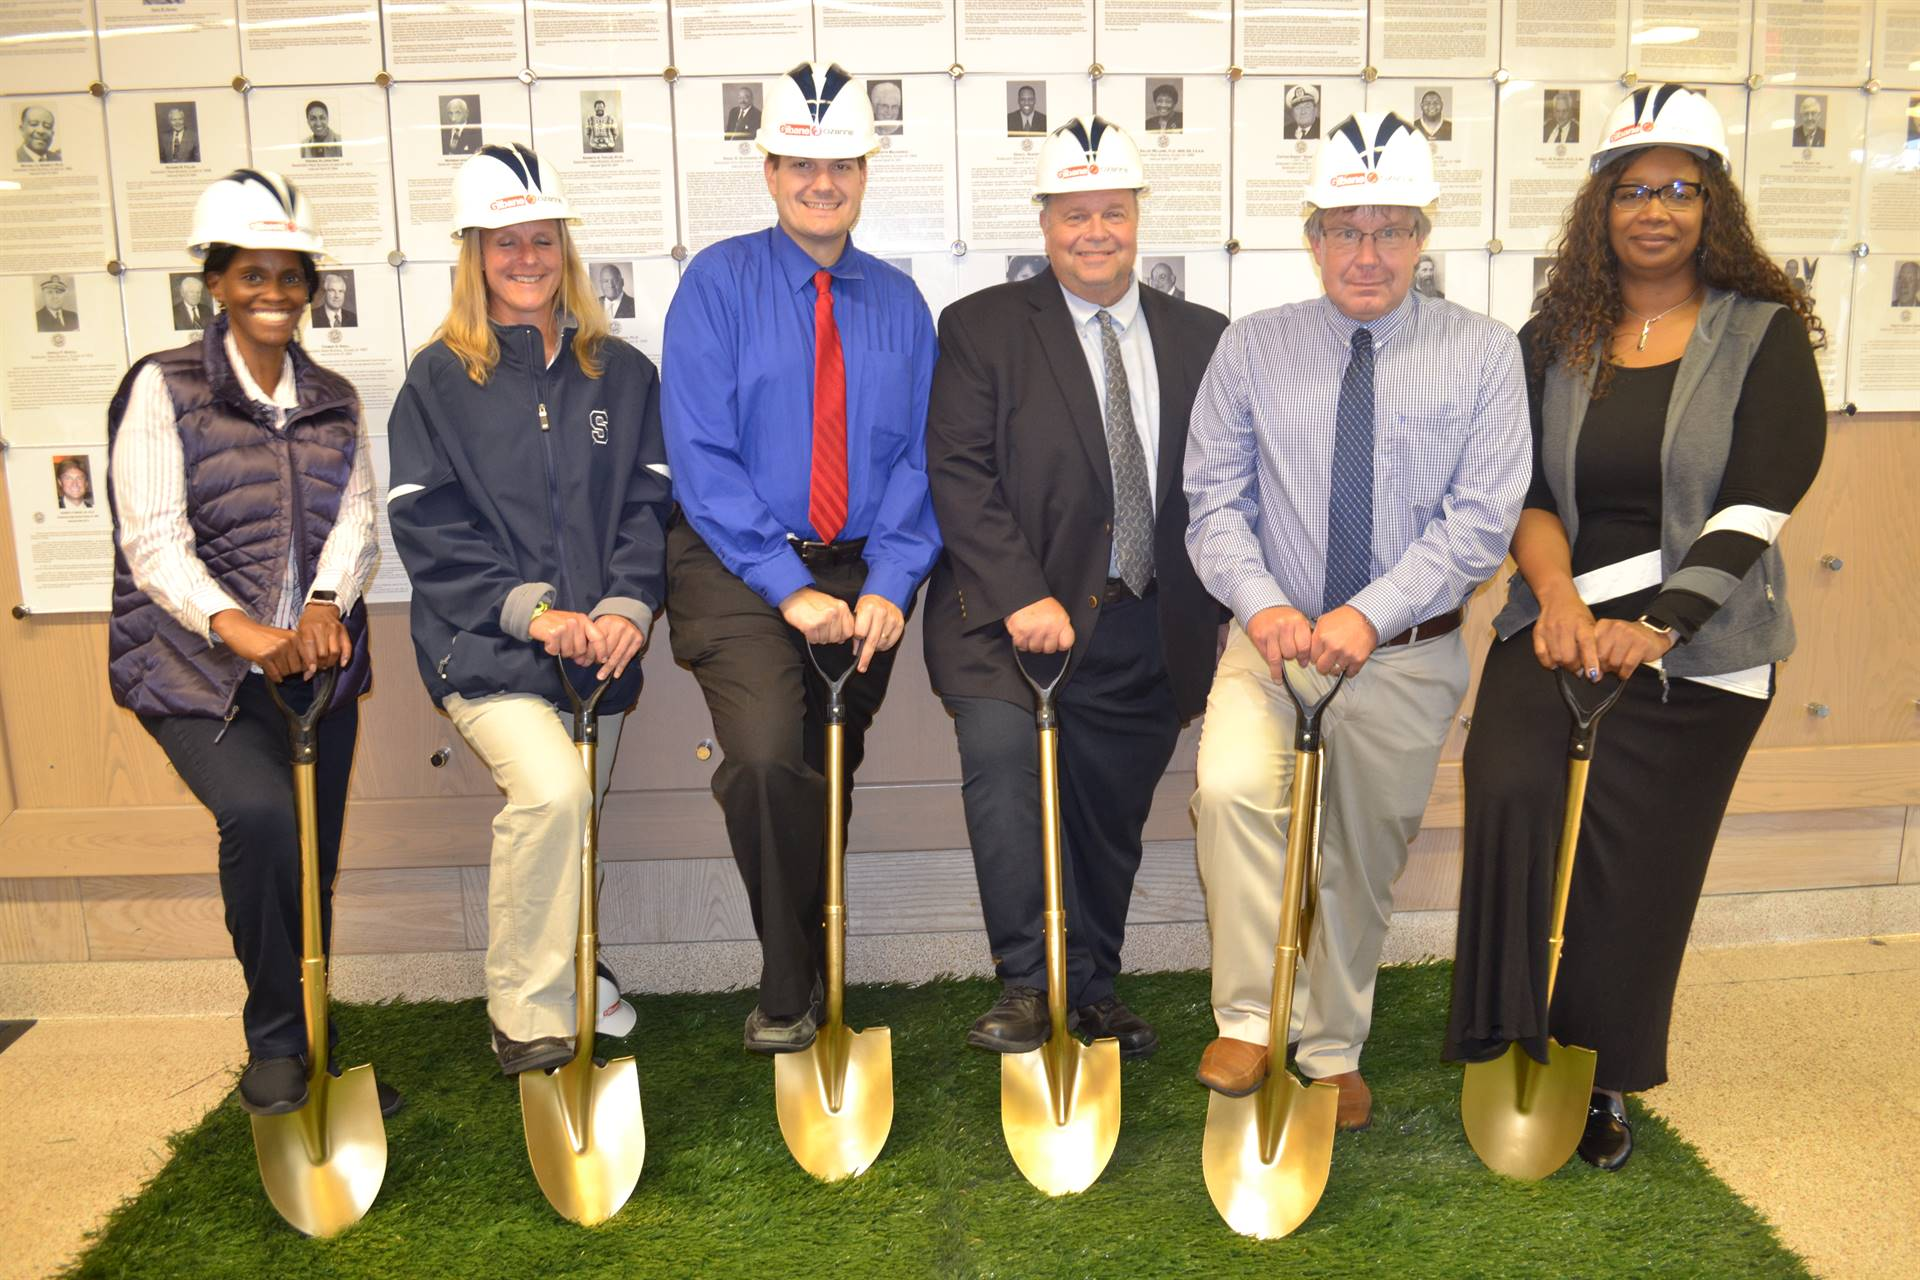 Elementary Principals at the Groundbreaking Ceremony